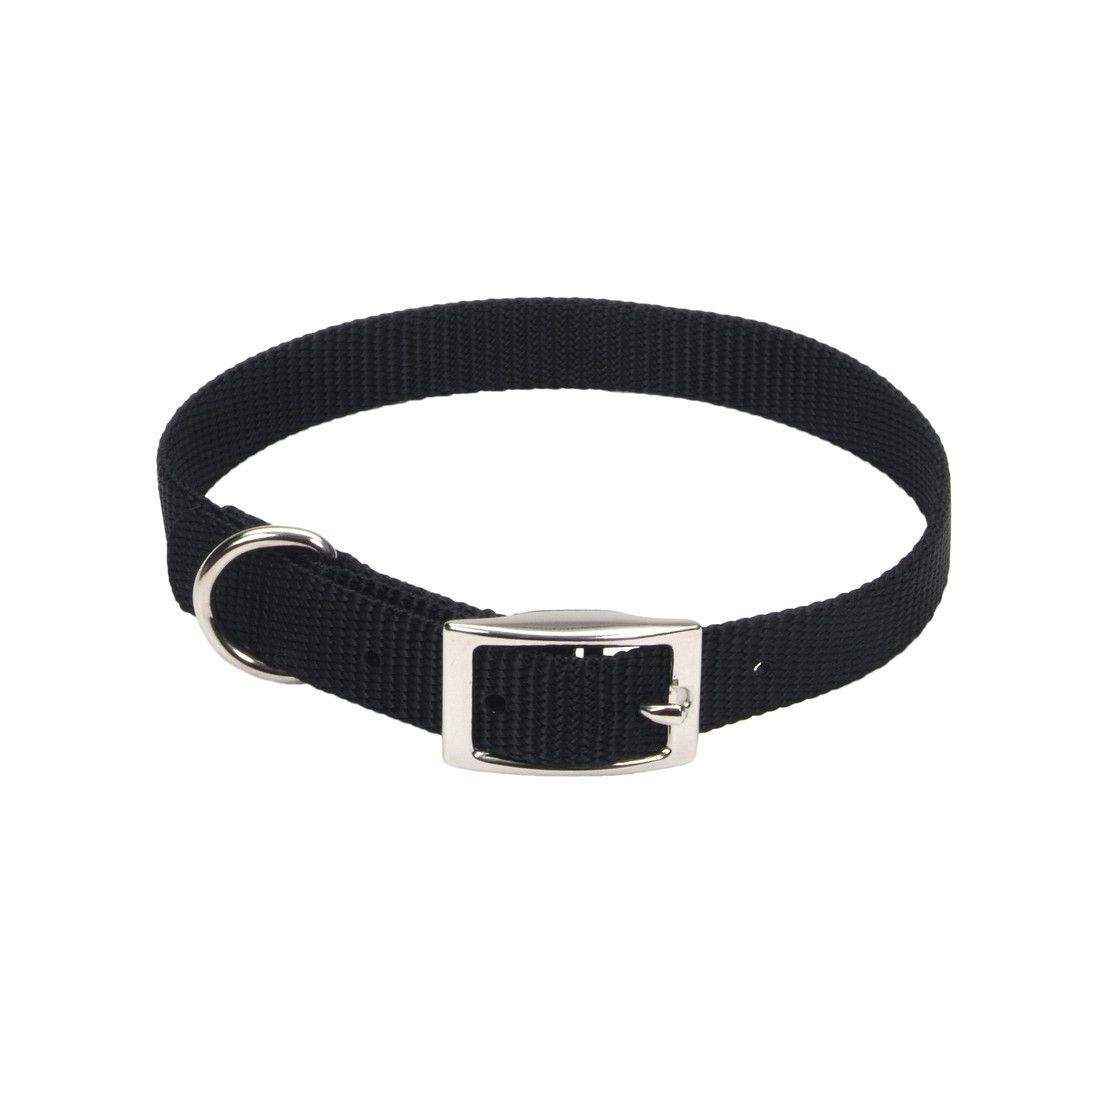 "Coastal Single-Ply Nylon Dog Collar 5/8"" x 16"" Black"